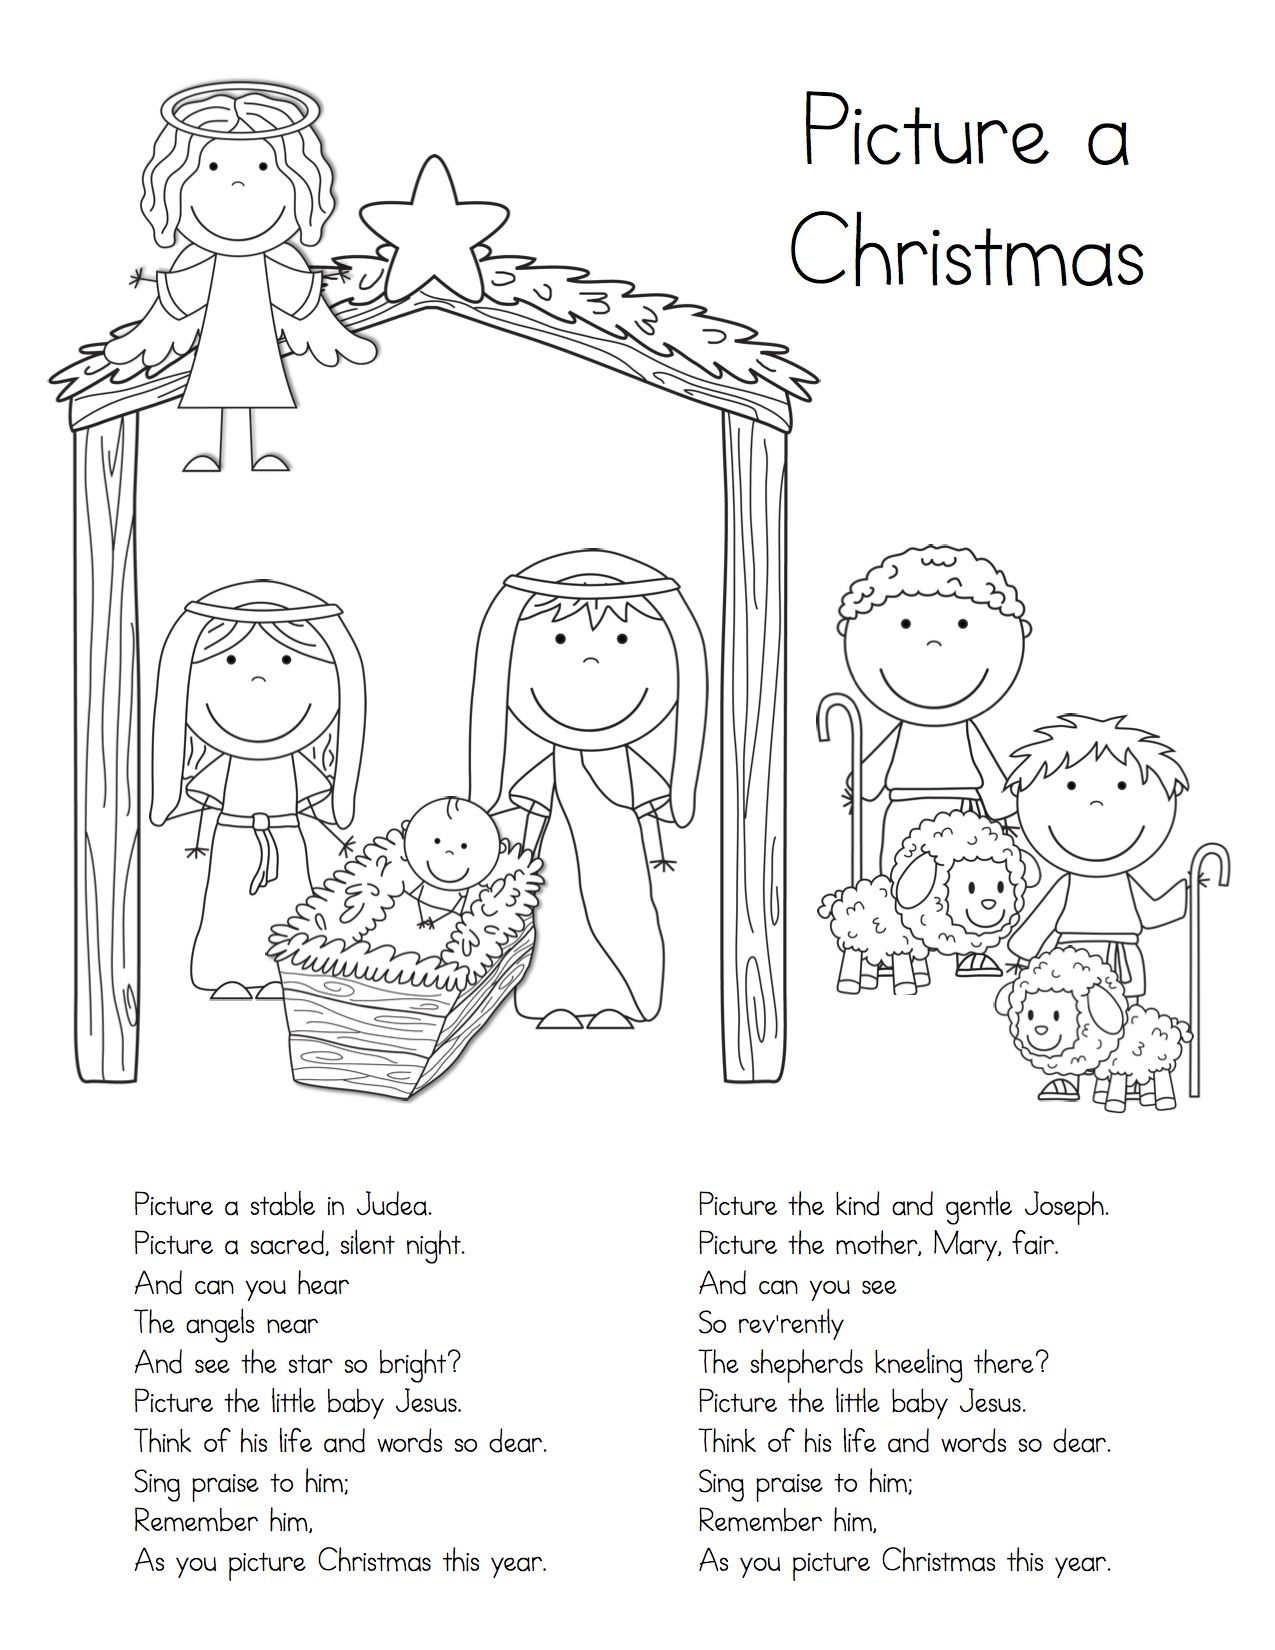 Picture A Christmas Handout